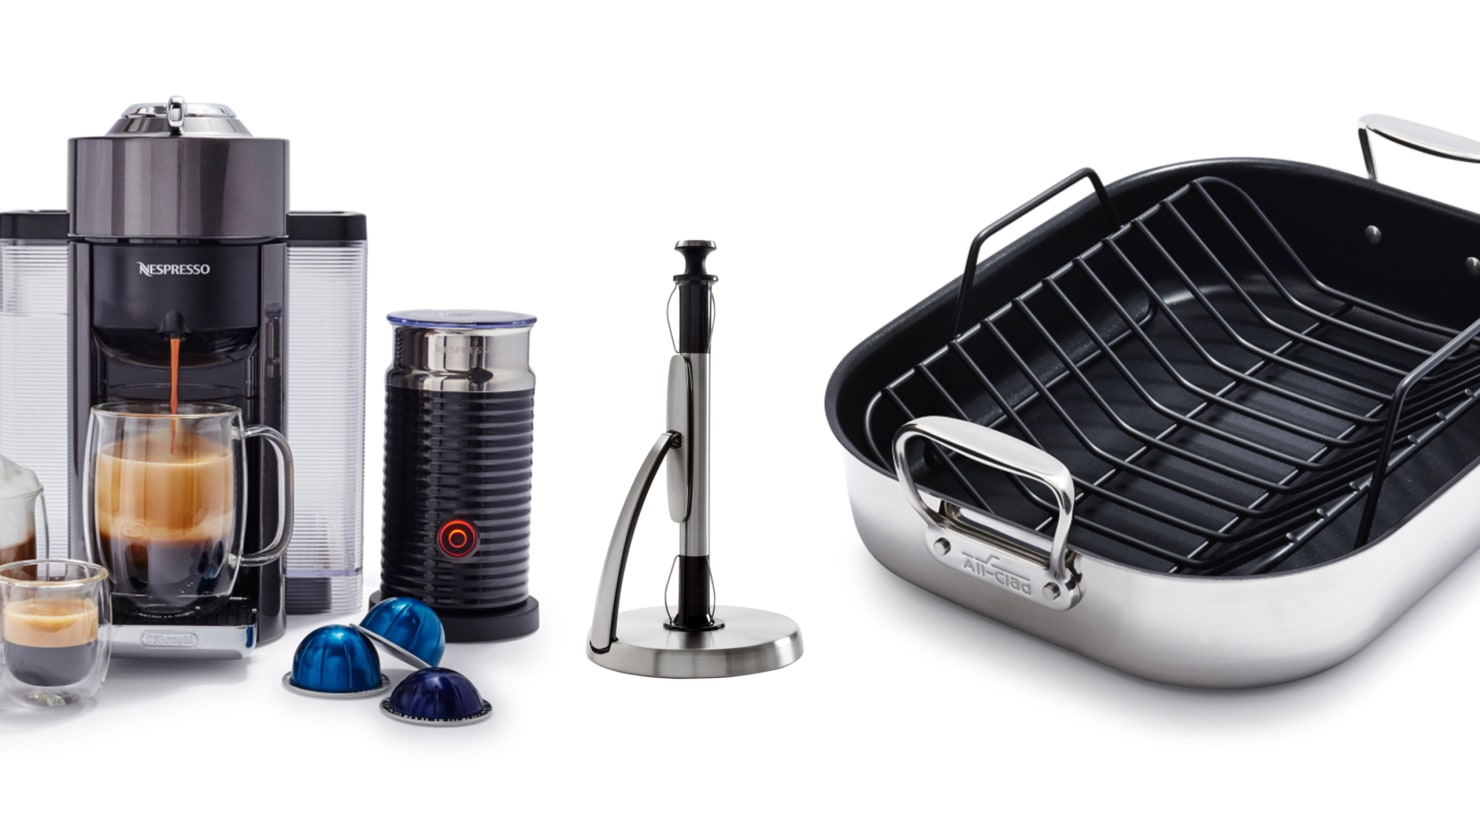 Save 20% On Virtually Anything at Sur La Table — From All-Clad to Nespresso and OXO — Through Tomorrow Night